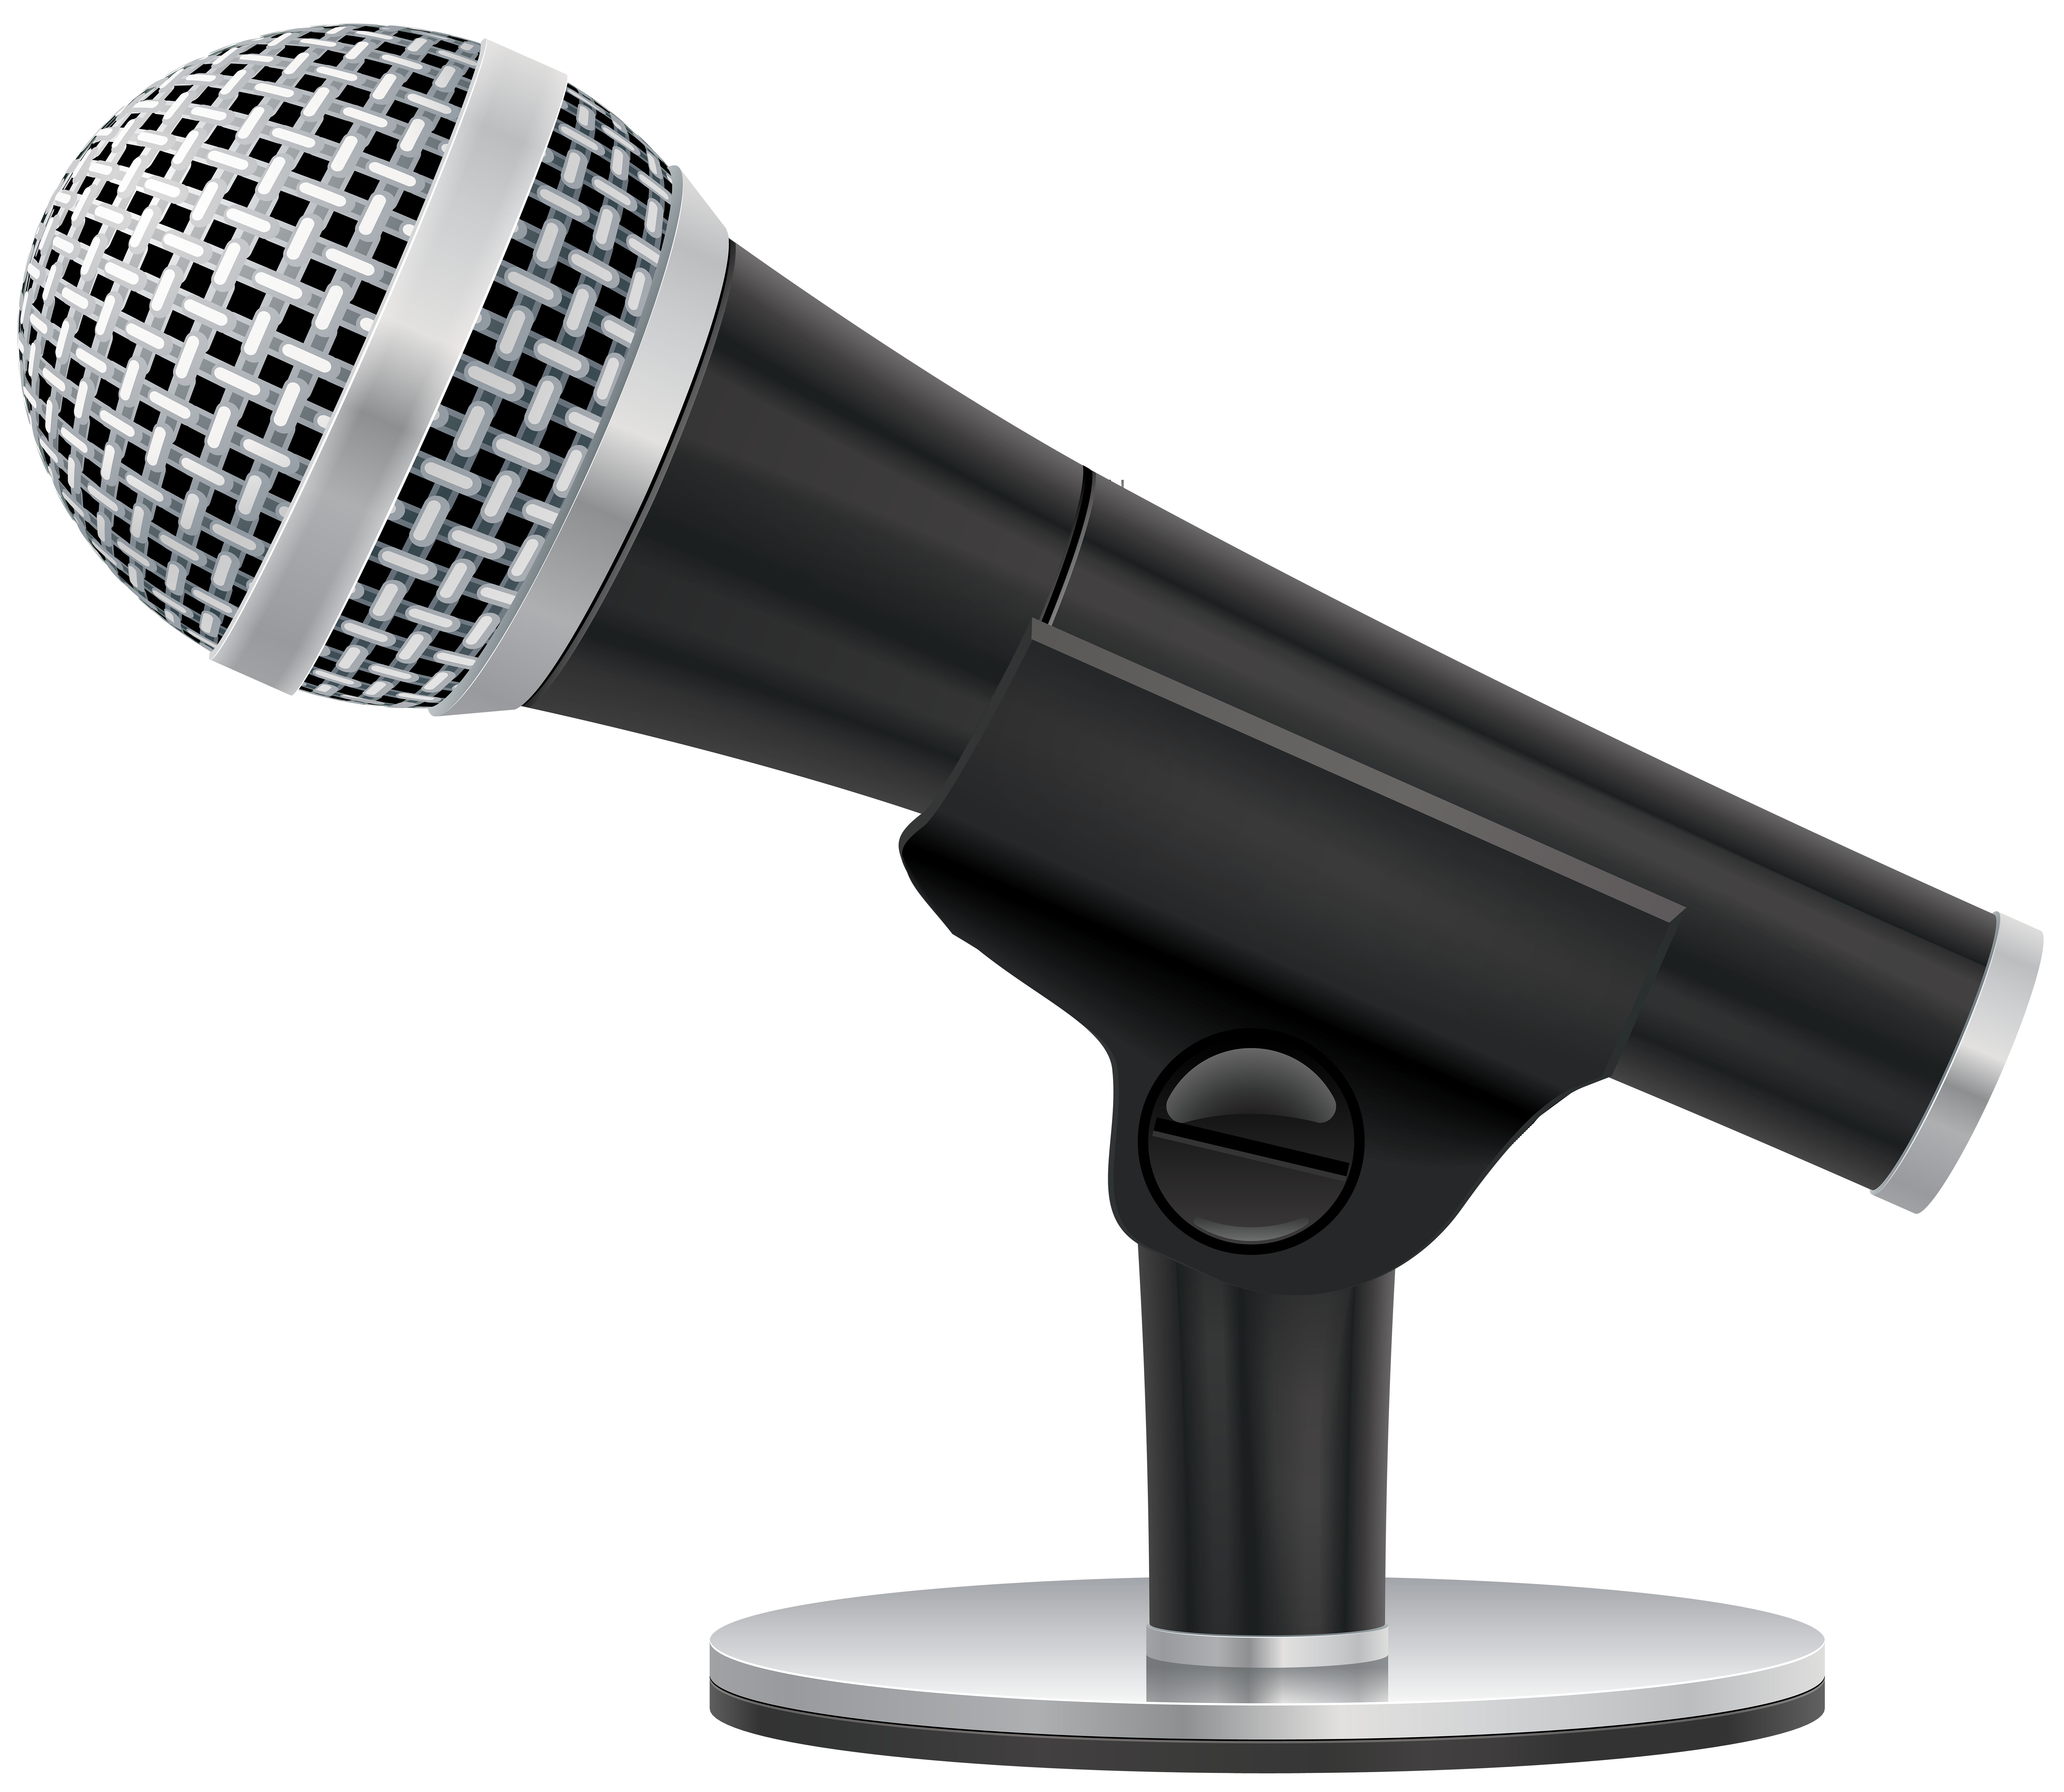 Download Hd Clipart Studio Small Microphone - Studio Mic Png Transparent  Background Microphone Clipart - free transparent png images - pngaaa.com